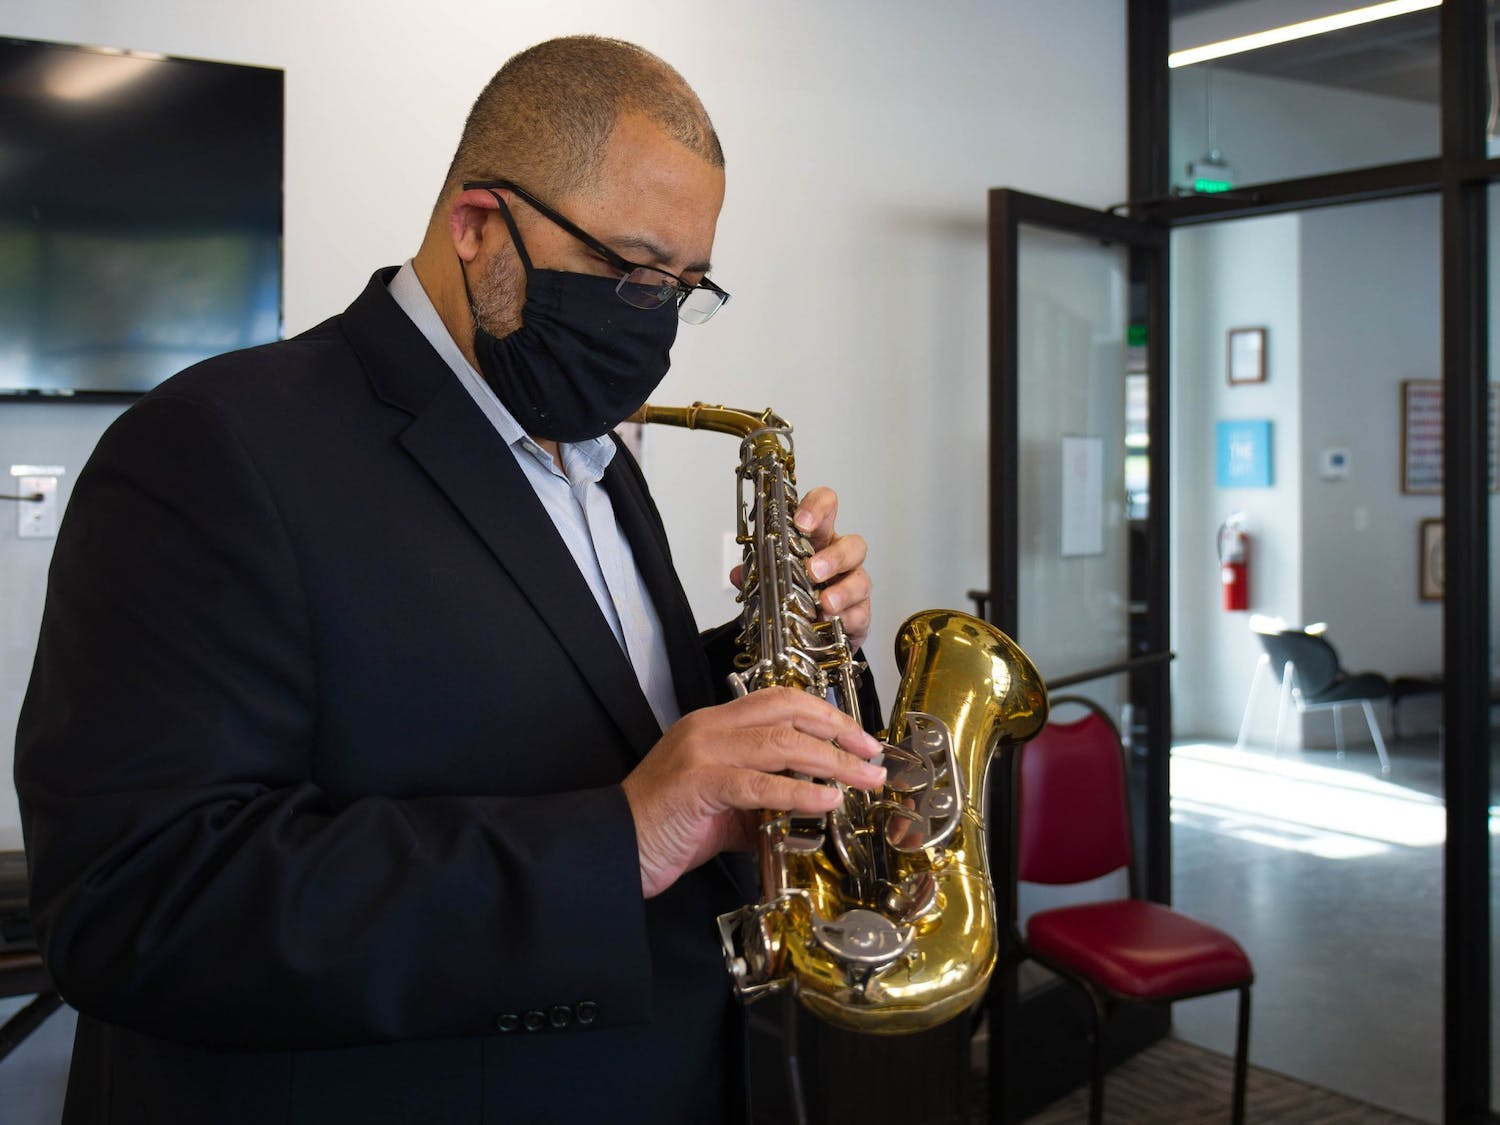 Ralph Barrett, an Assistant Professor of NC Central University's Music Department, tests the condition of the pads on a donated saxophone in the YouthWorx conference room on Wednesday, Dec. 9, 2020. Barrett is a member of Musical Empowerment's Board of Directors.